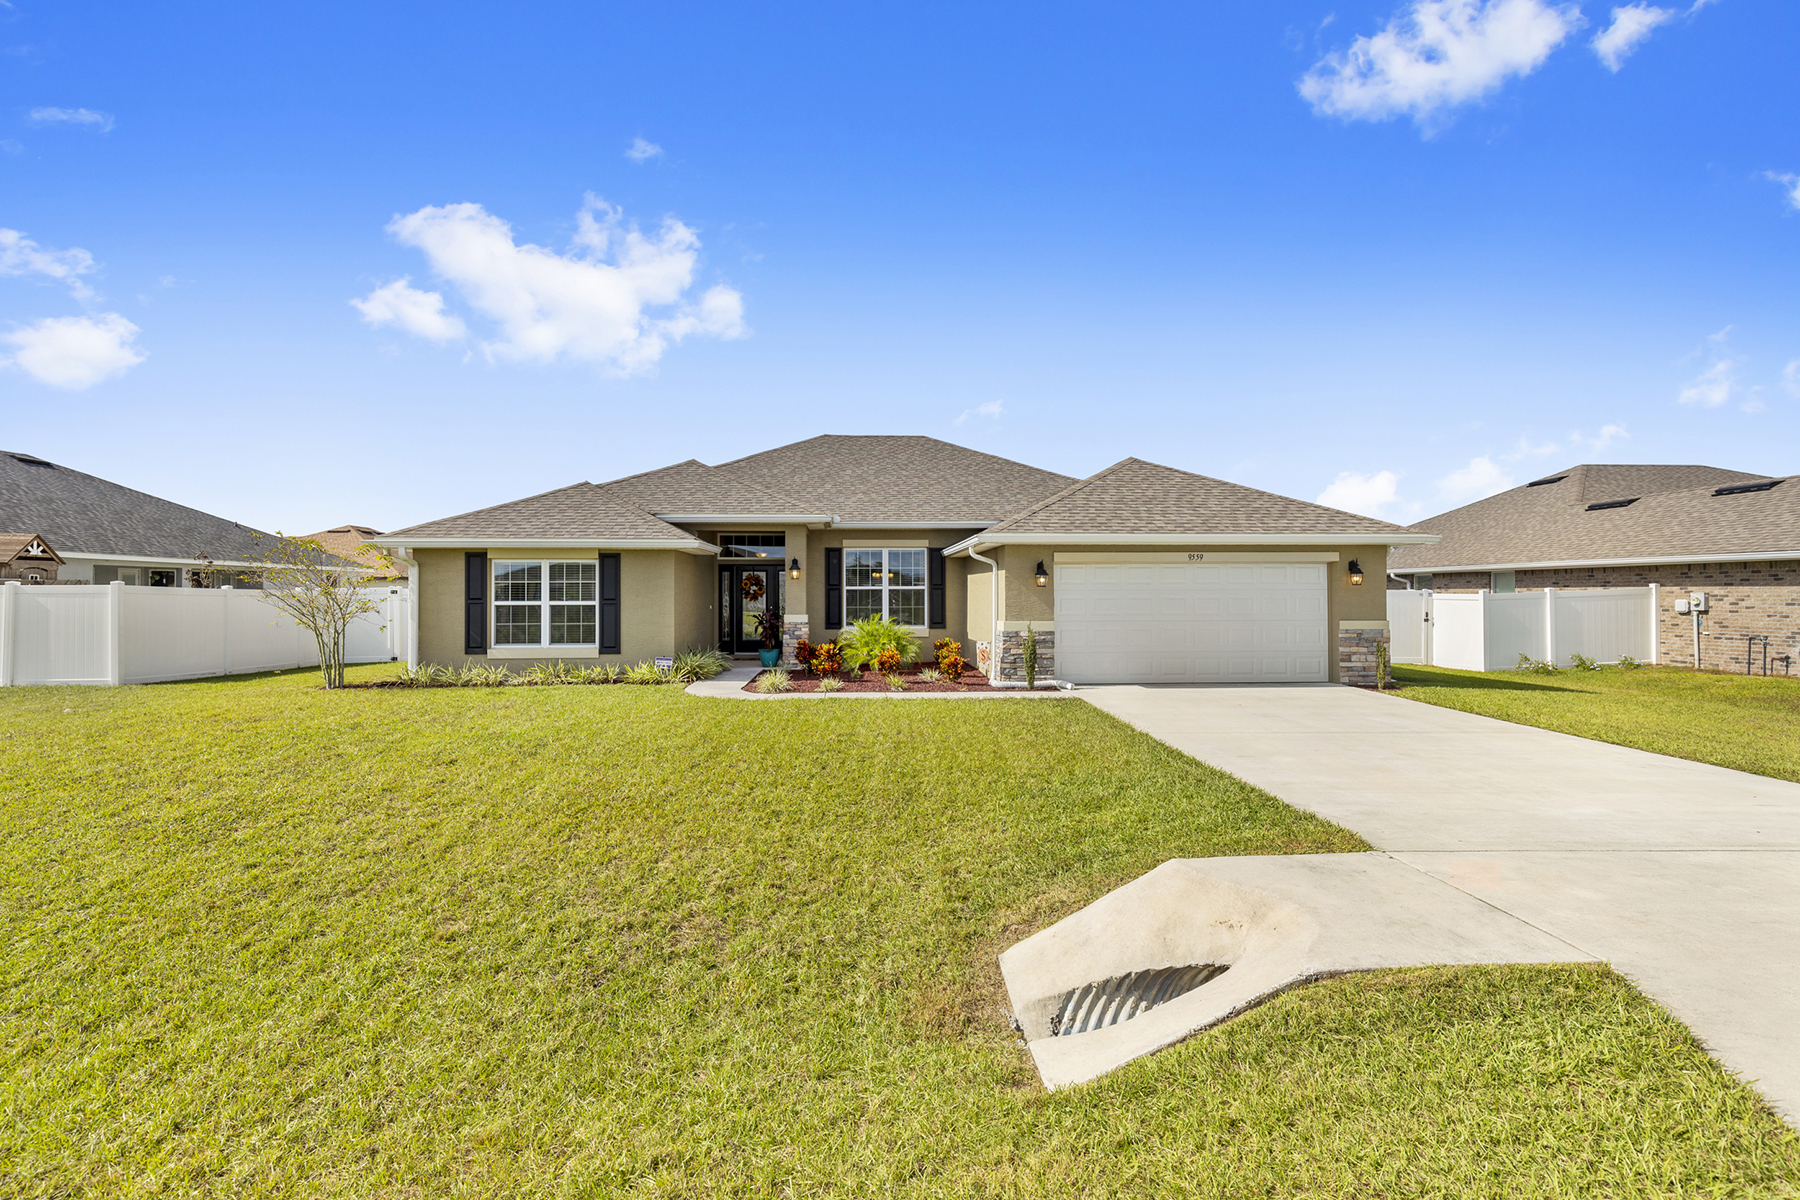 Single Family Homes for Sale at OCALA 9559 Sw 51st Cir, Ocala, Florida 34476 United States